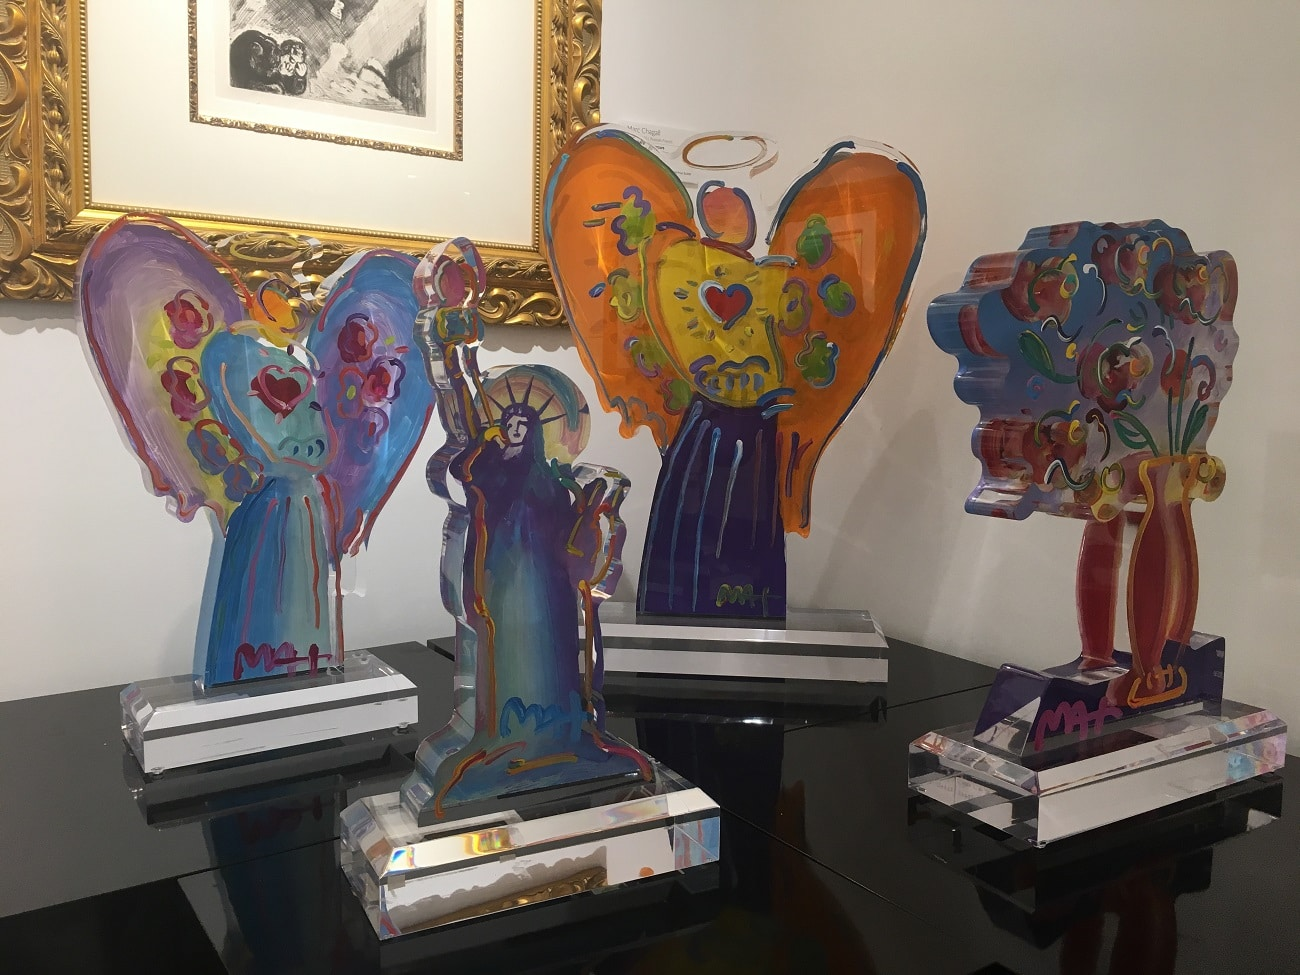 These acrylic sculptures by Peter Max would be ideal candidates for a lighted pedestal.